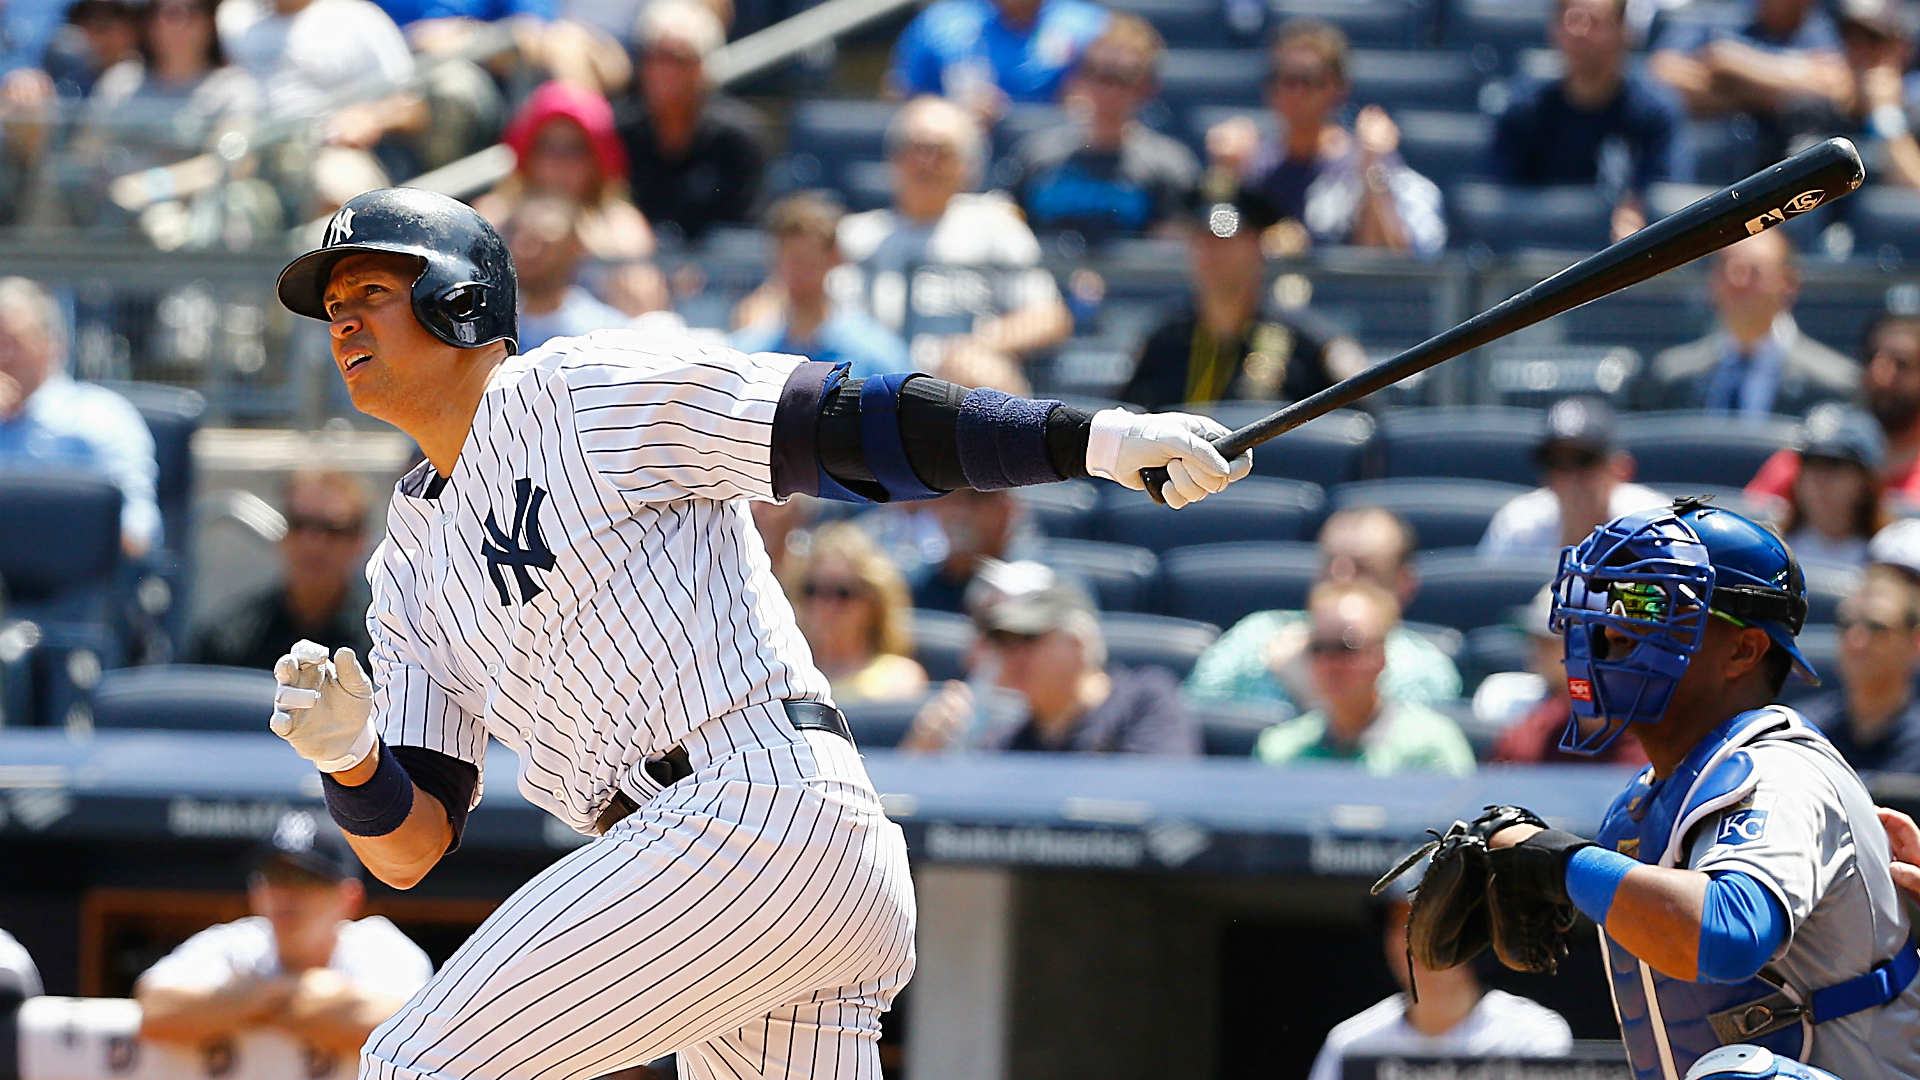 A-Rod either passes or ties Lou Gehrig on baseball's all-time RBI list